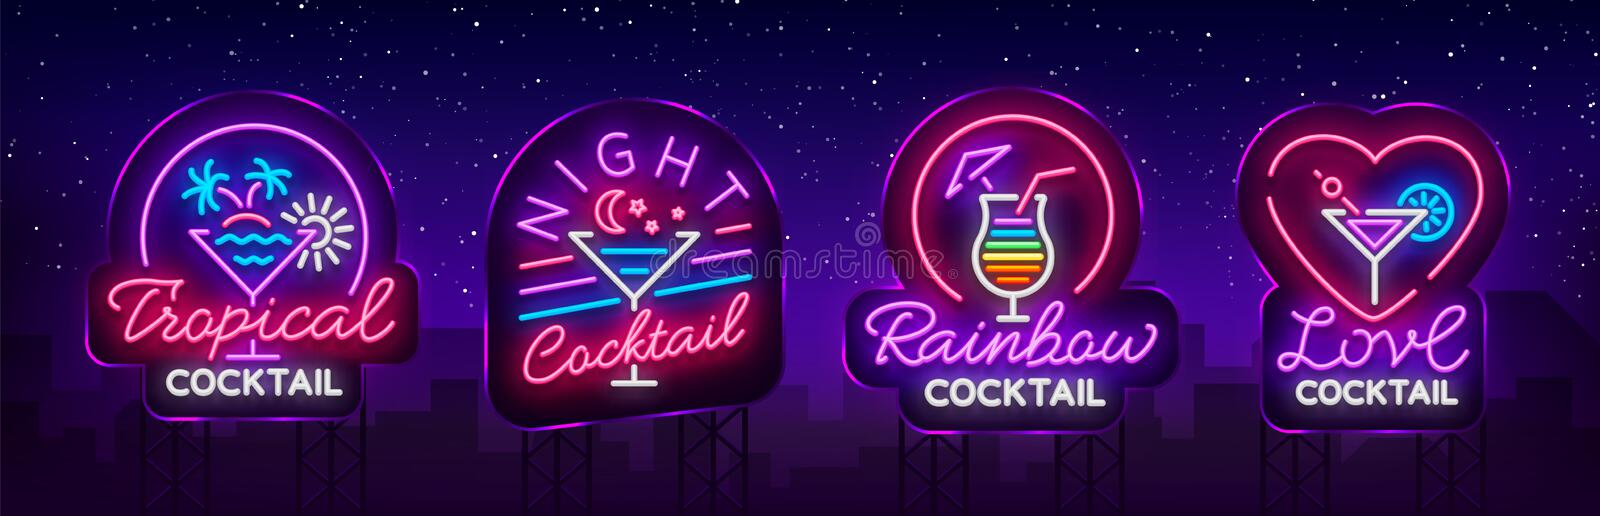 Cocktail collection logos in neon style. Collection of neon signs, Design template on the theme of drinks, alcoholic royalty free illustration